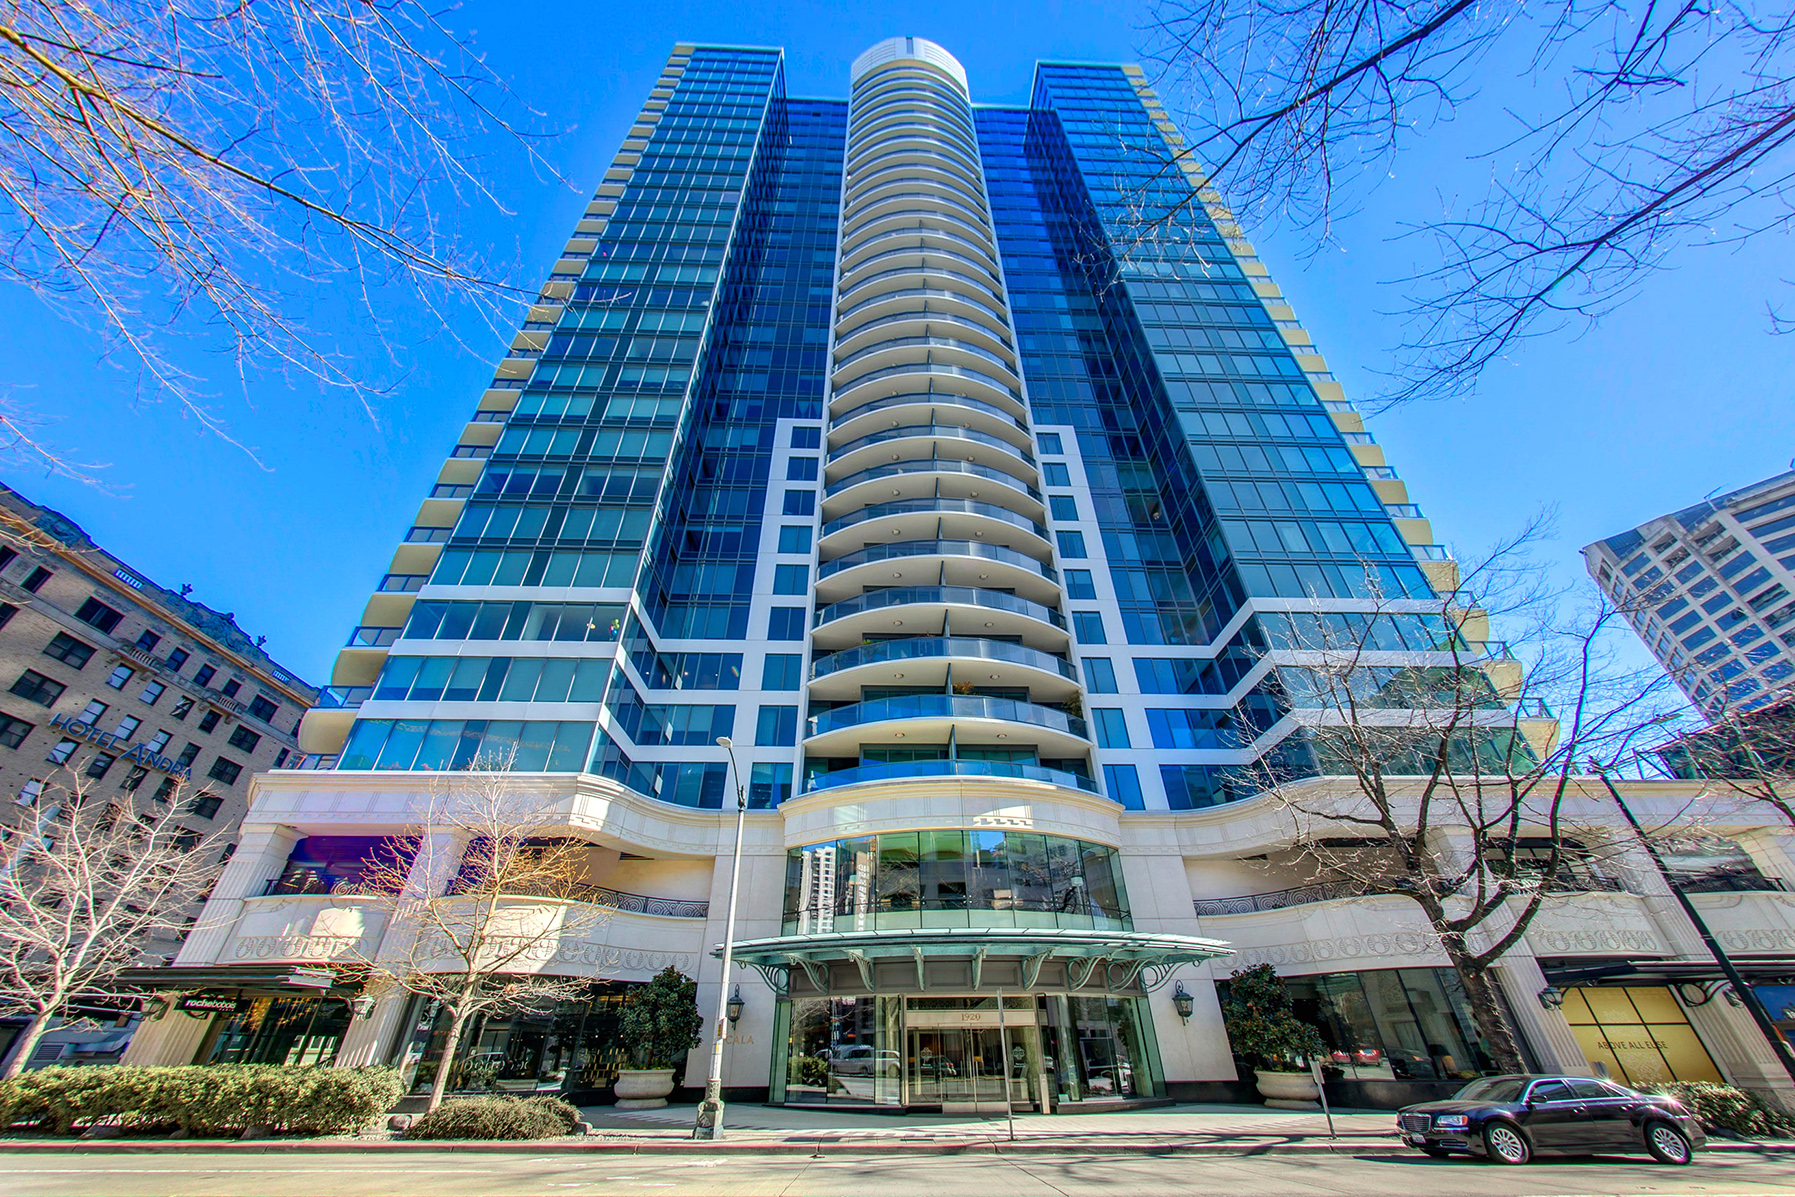 A rare opportunity to own a truly luxurious end unit at the top of Seattle's most iconic 31-story high-rise tower, Escala.